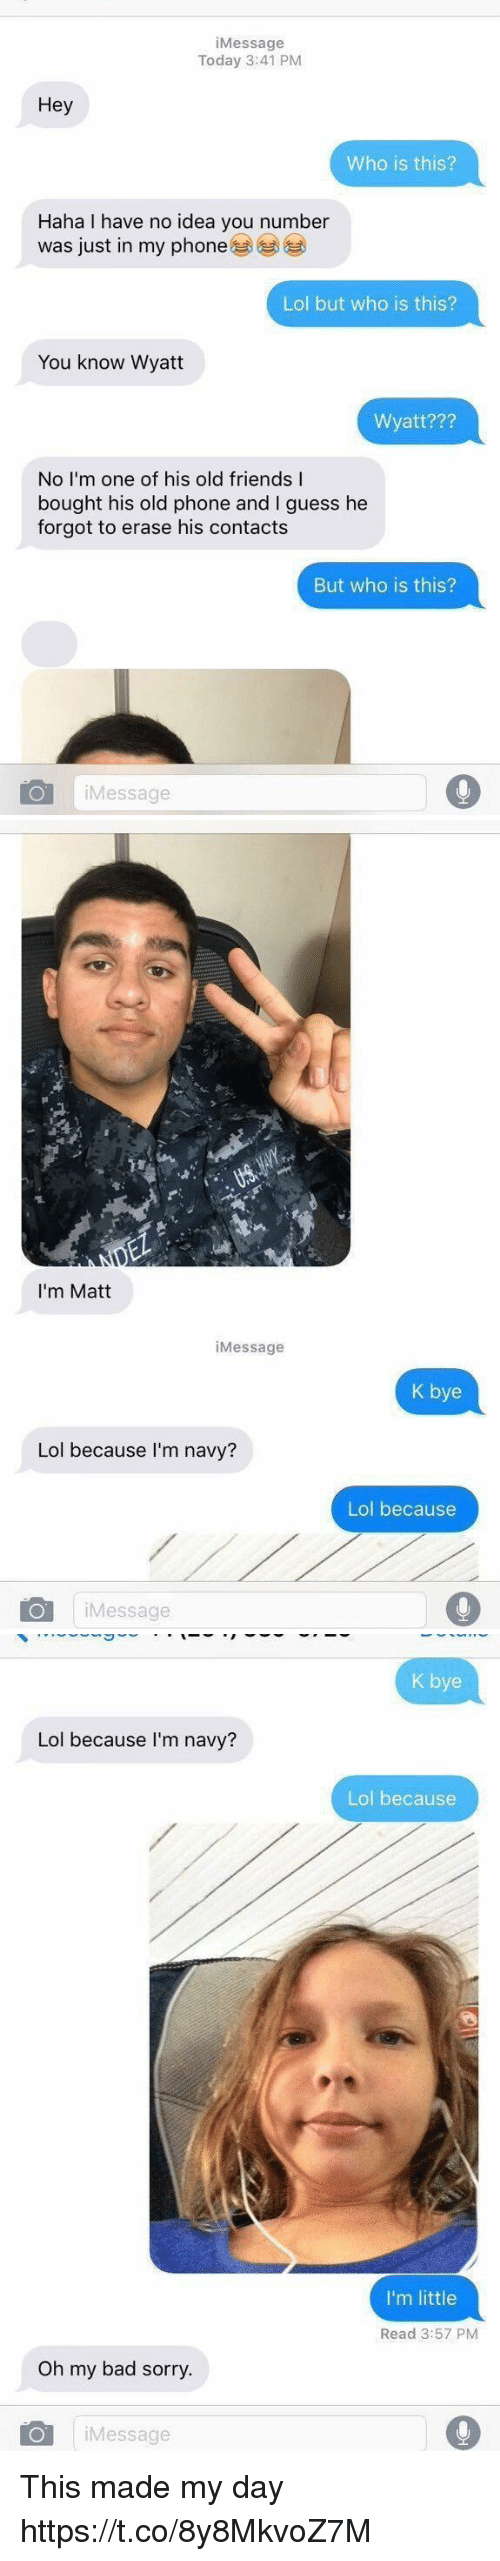 Bad, Friends, and Lol: iMessage  Today 3:41 PM  Hey  Who is this?  Haha I have no idea you number  was just in my phone  Lol but who is this?  You know Wyatt  Wyatt???  No I'm one of his old friends I  bought his old phone and I guess he  forgot to erase his contacts  But who is this?  iMessage   I'm Matt  iMessage  K bye  Lol because I'm navy?  Lol because  iMessage   K bye  Lol because I'm navy?  Lol because  I'm little  Read 3:57 PM  Oh my bad sorry.  iMessage This made my day https://t.co/8y8MkvoZ7M